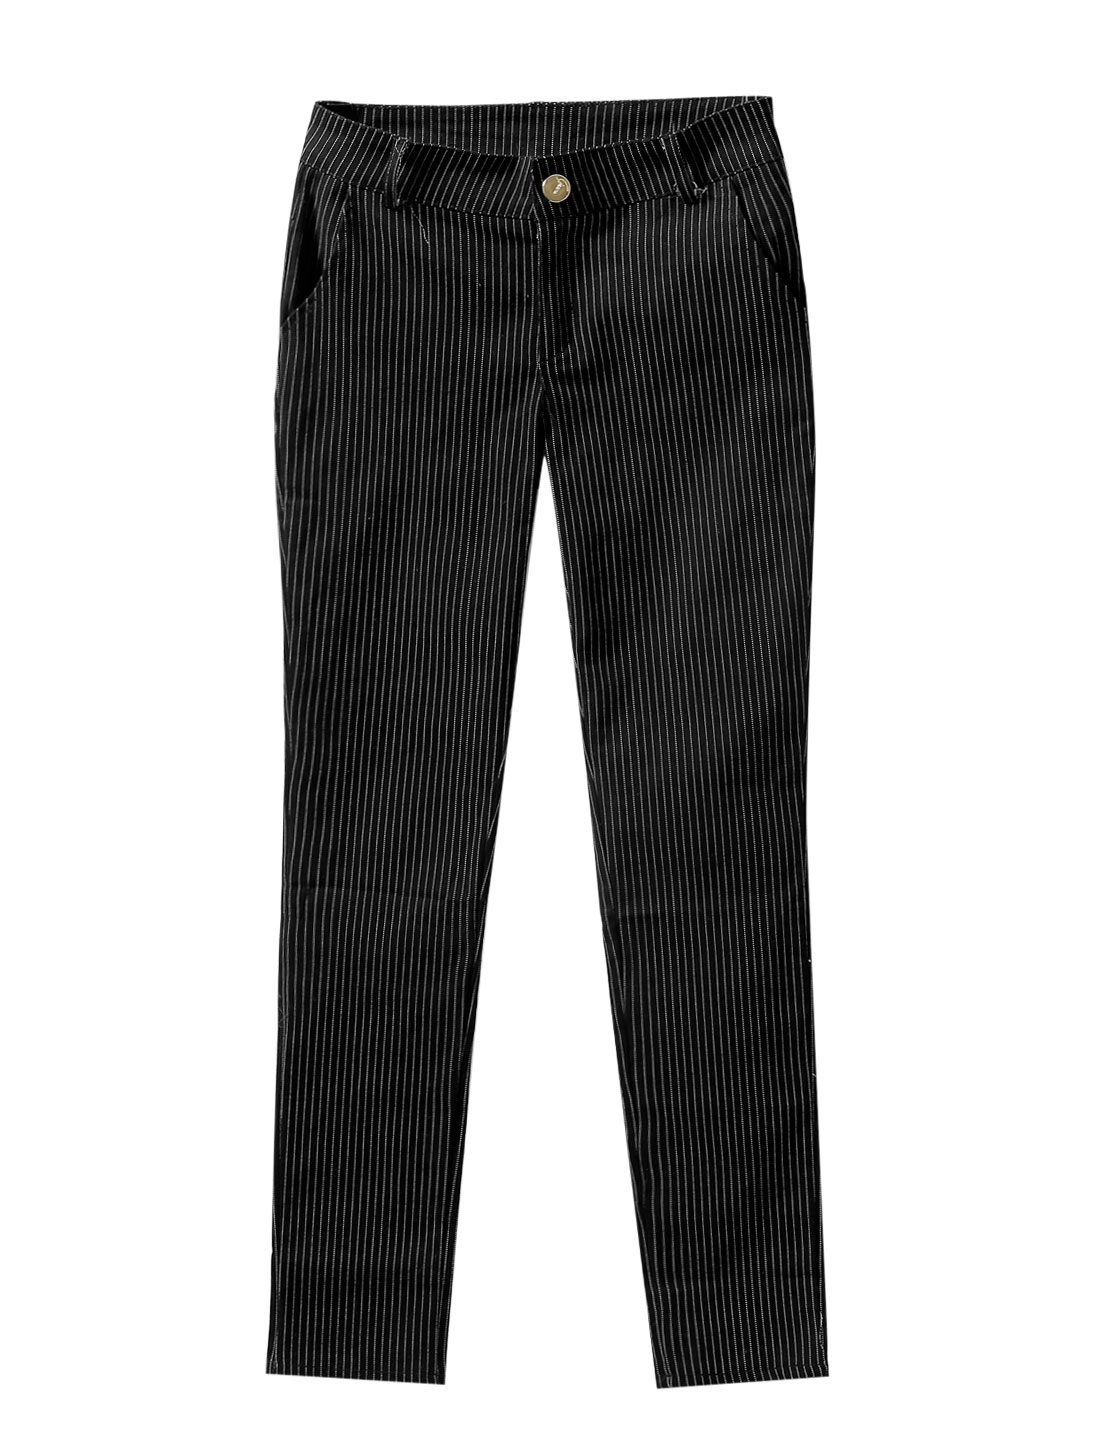 Lady Stripes Pattern One Button Closure Front Casual Cropped Pants Black S